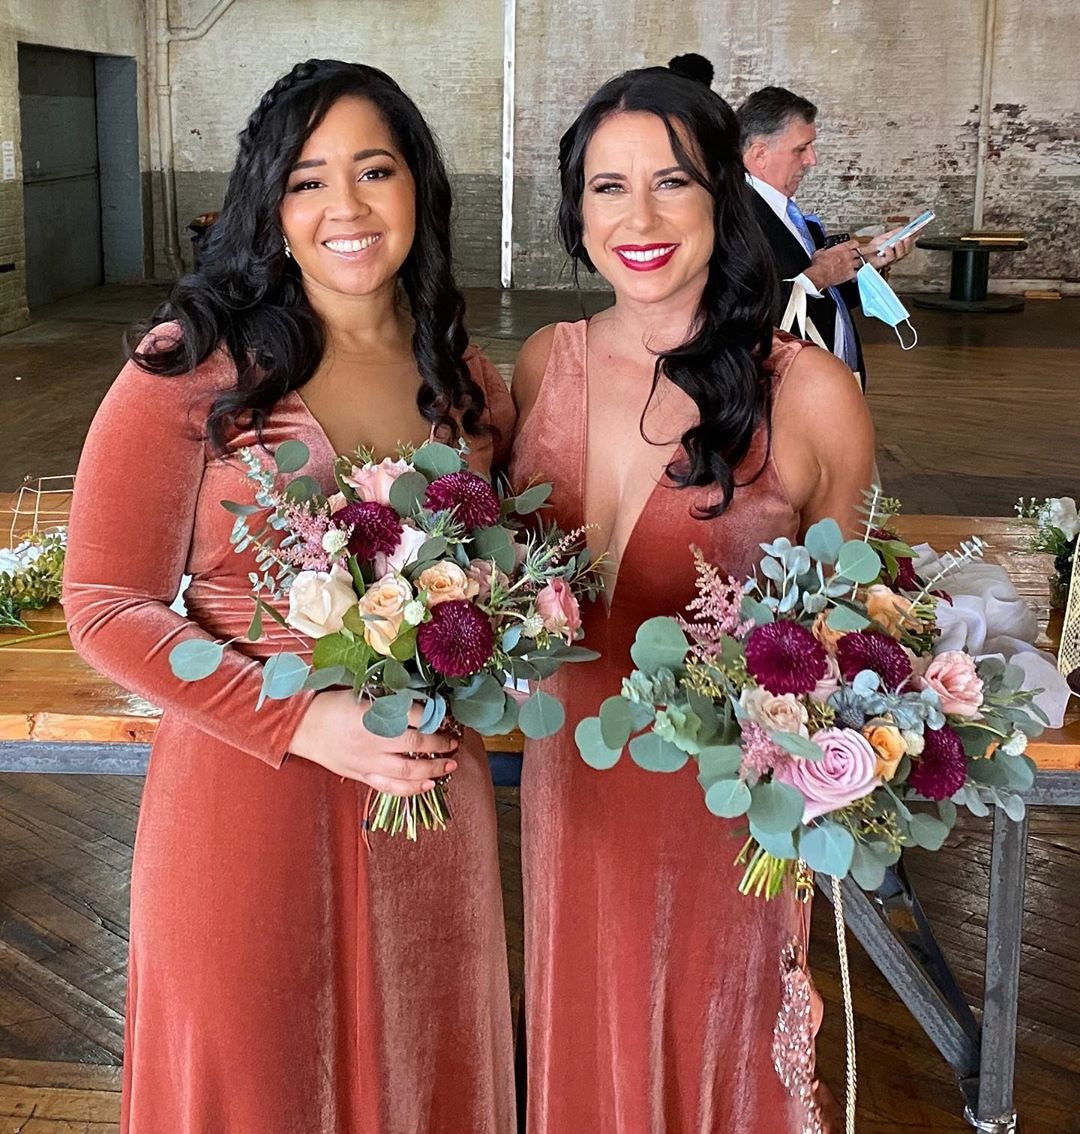 Bold Velvet Bridesmaid Dress With Daring Deep V Neck (AF0133) and Long Sleeve Velvet Bridesmaid Dresses with Illusion V-neck (AF0127) in Cinnamon_Rose